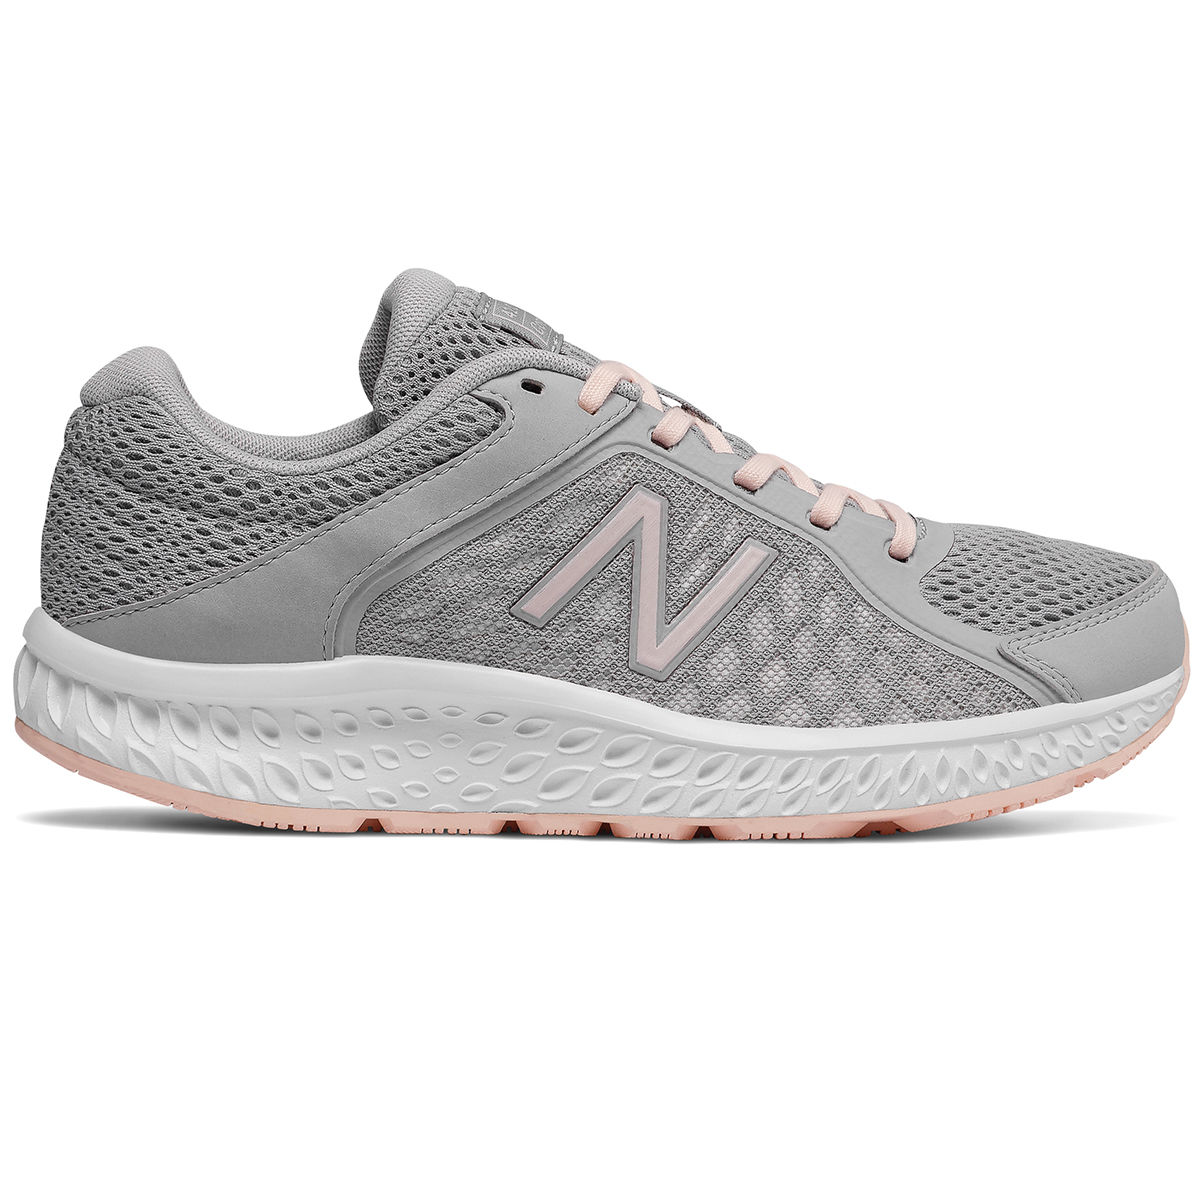 New Balance Women's 420V4 Running Shoes, Wide - Black, 10